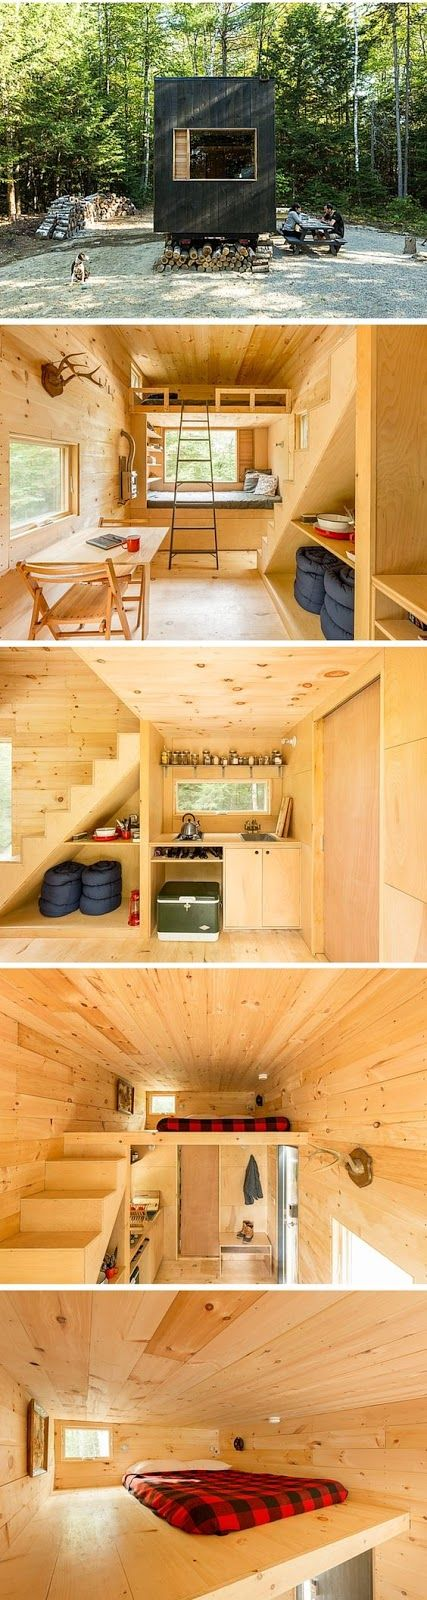 The log tiny house, a with 40ft vacation rental.